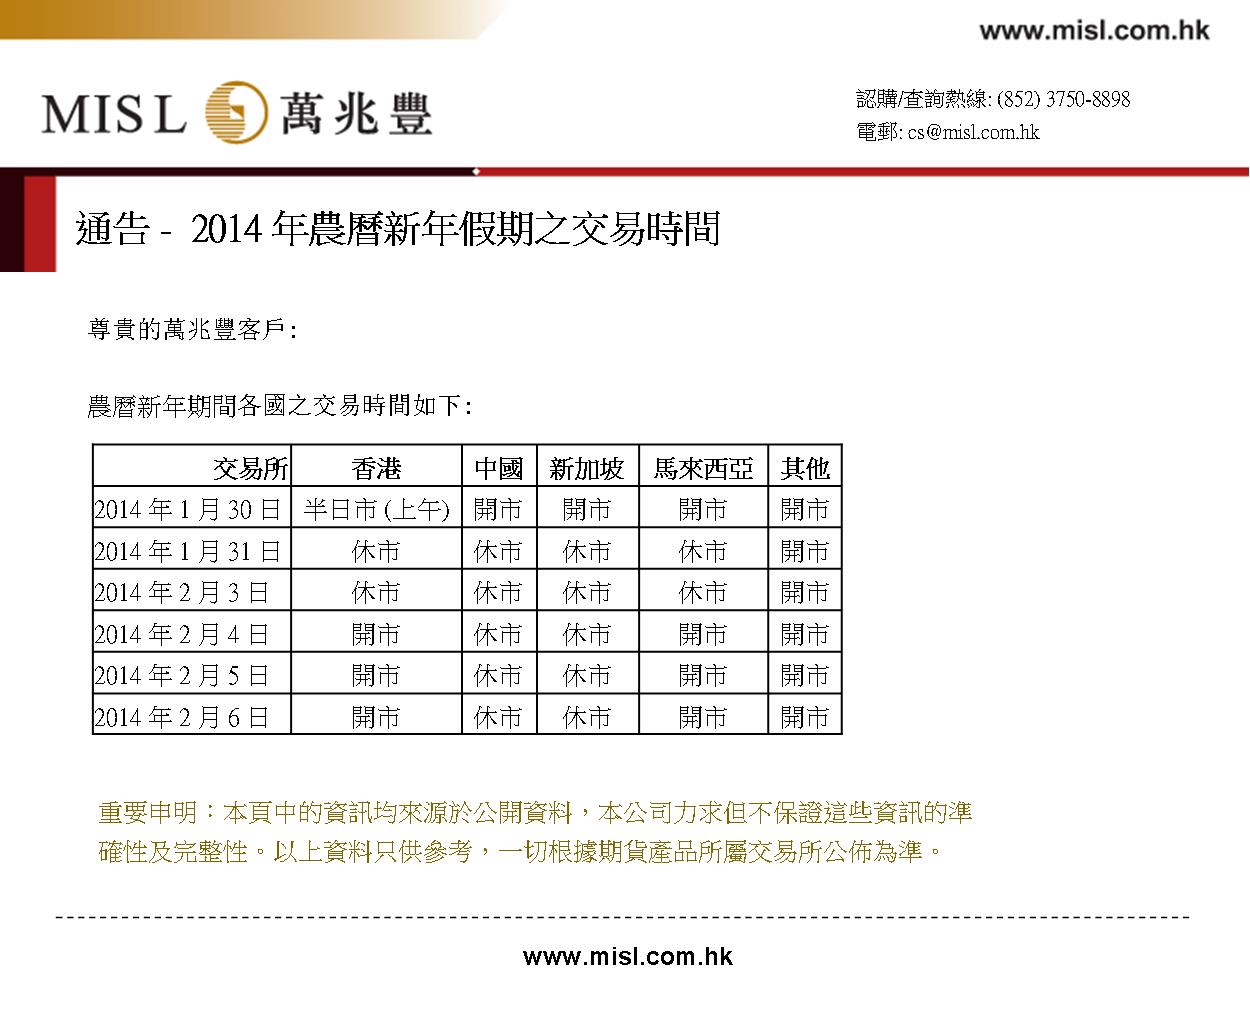 2014 Lunar New Year Holidays Tradding Hours